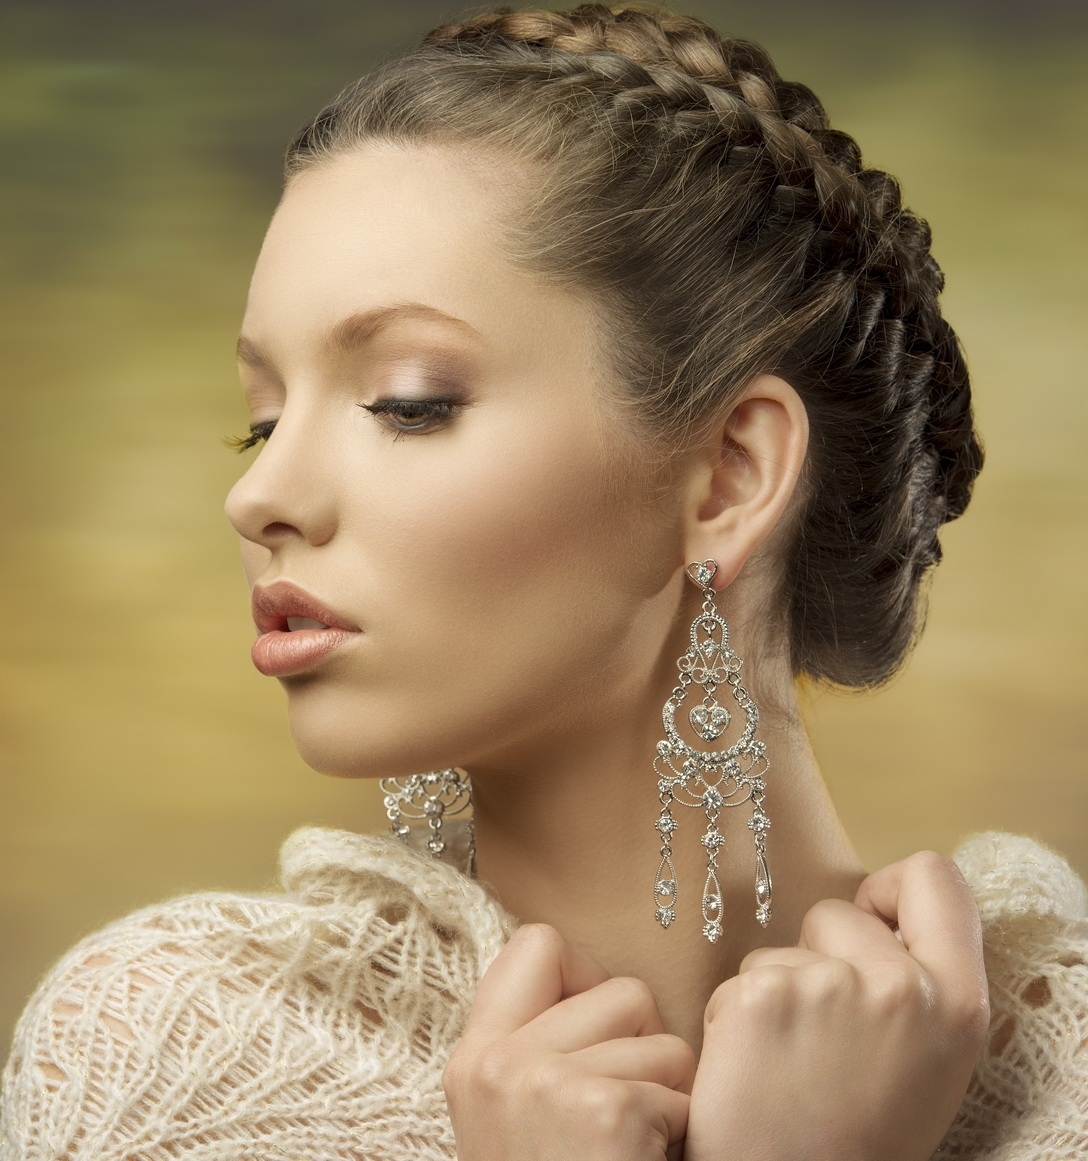 Braided Twist Updo For Oval And Round Faces 2018 Pertaining To 2018 Braided Hairstyles For Round Face (View 11 of 15)